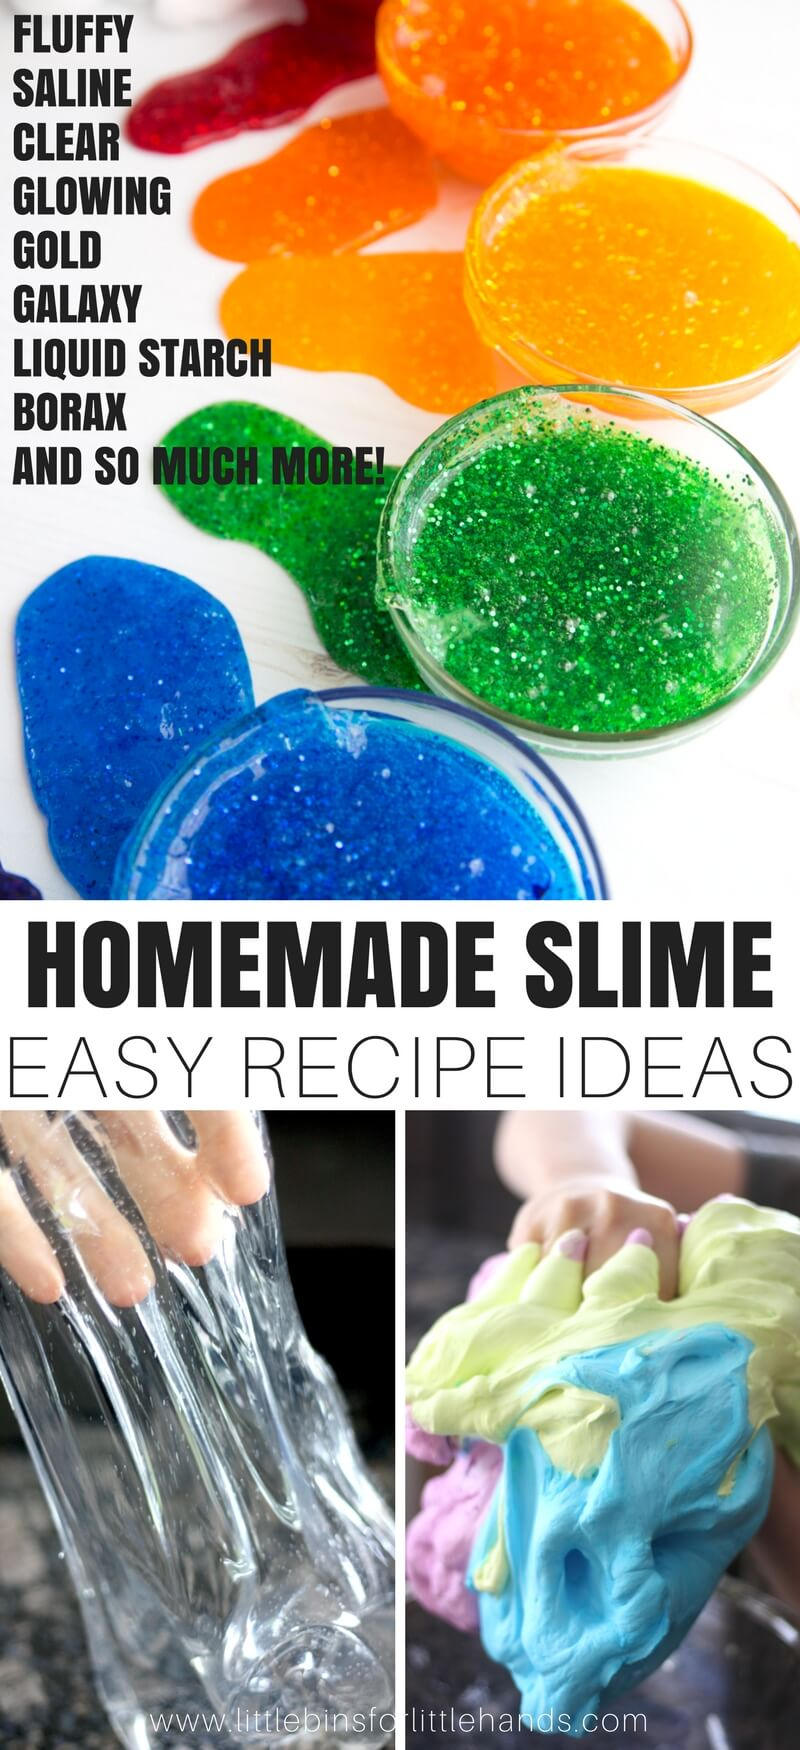 Homemade slime recipe for making slime with kids the best ever homemade slime recipe ideas to make with kids we show you how ccuart Image collections